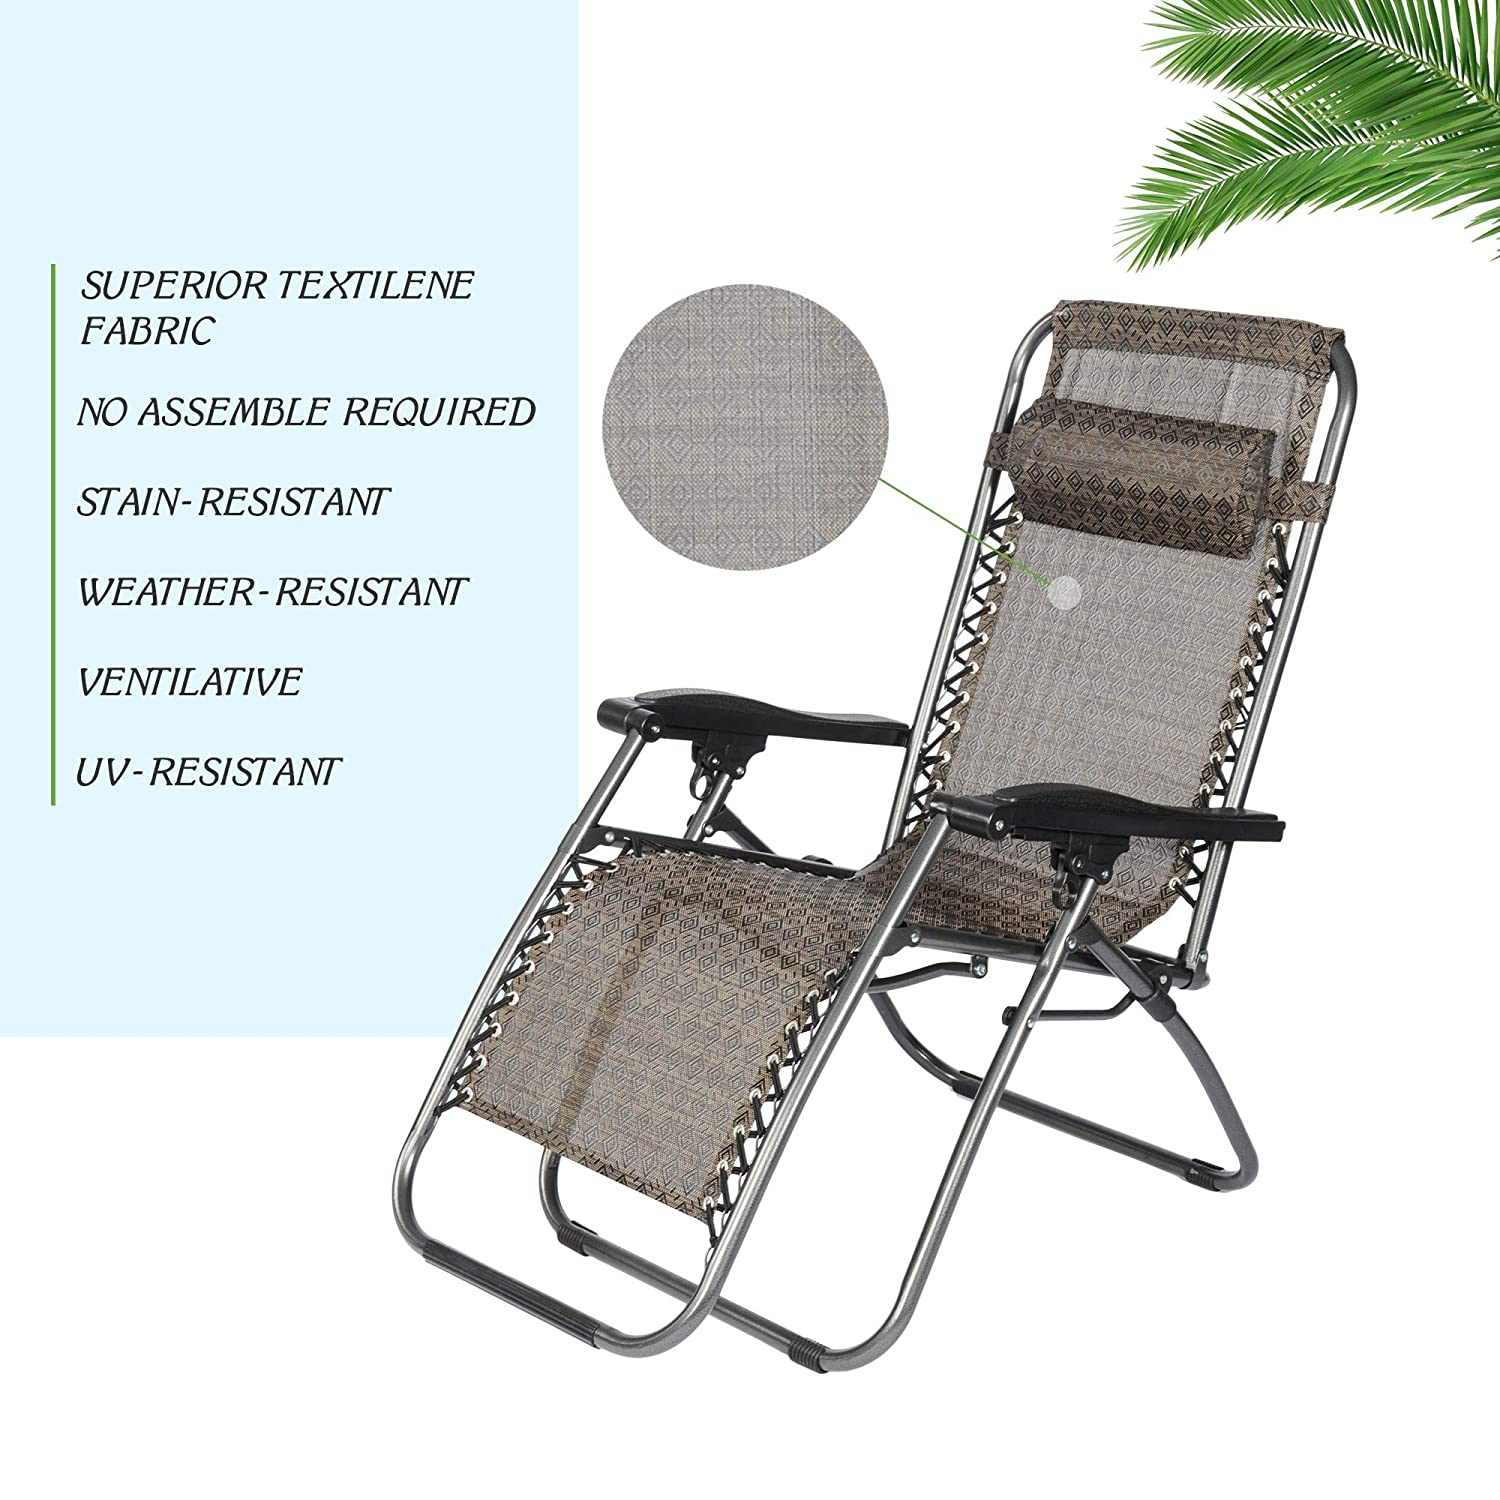 Livebest Set of 2 Adjustable Zero Gravity Chair Patio Lounge Chairs Folding Recliner Outdoor Pool Yard Beach